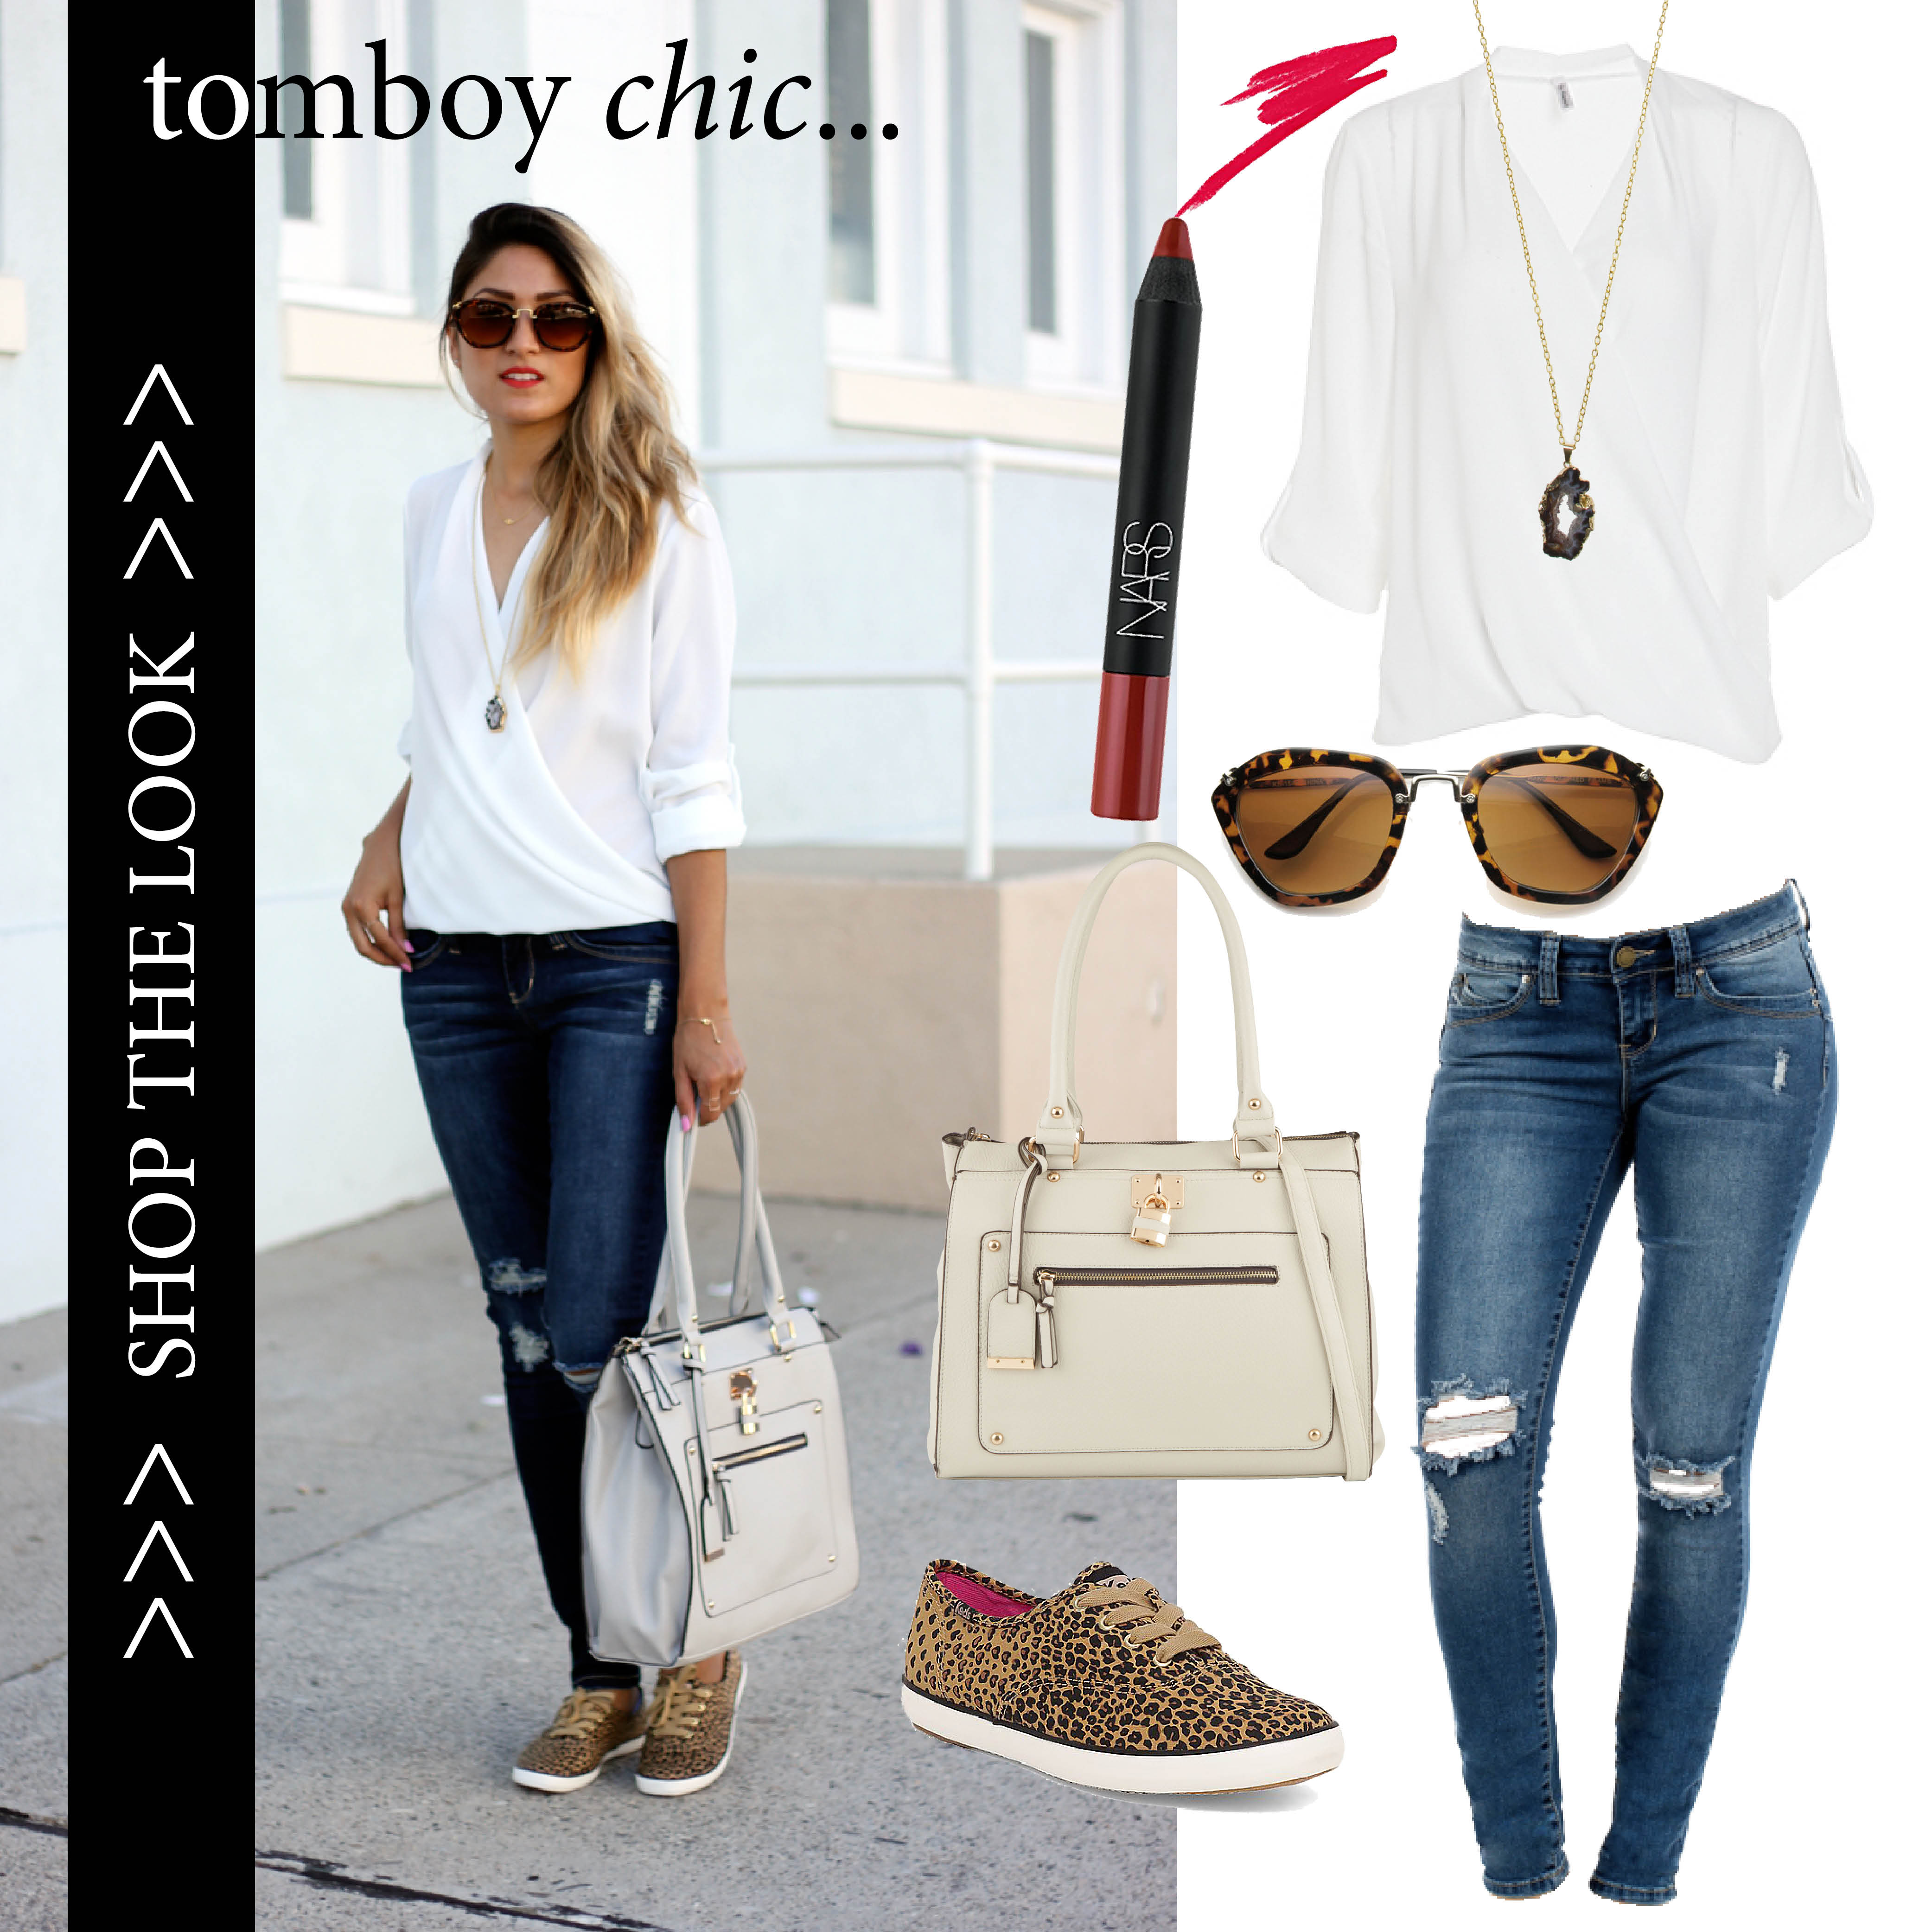 tomboy chic, weekend, ootd, casual, shop the look, shopping, melrodstyle, trending, chic, tomboy, daily look, keds, leopard